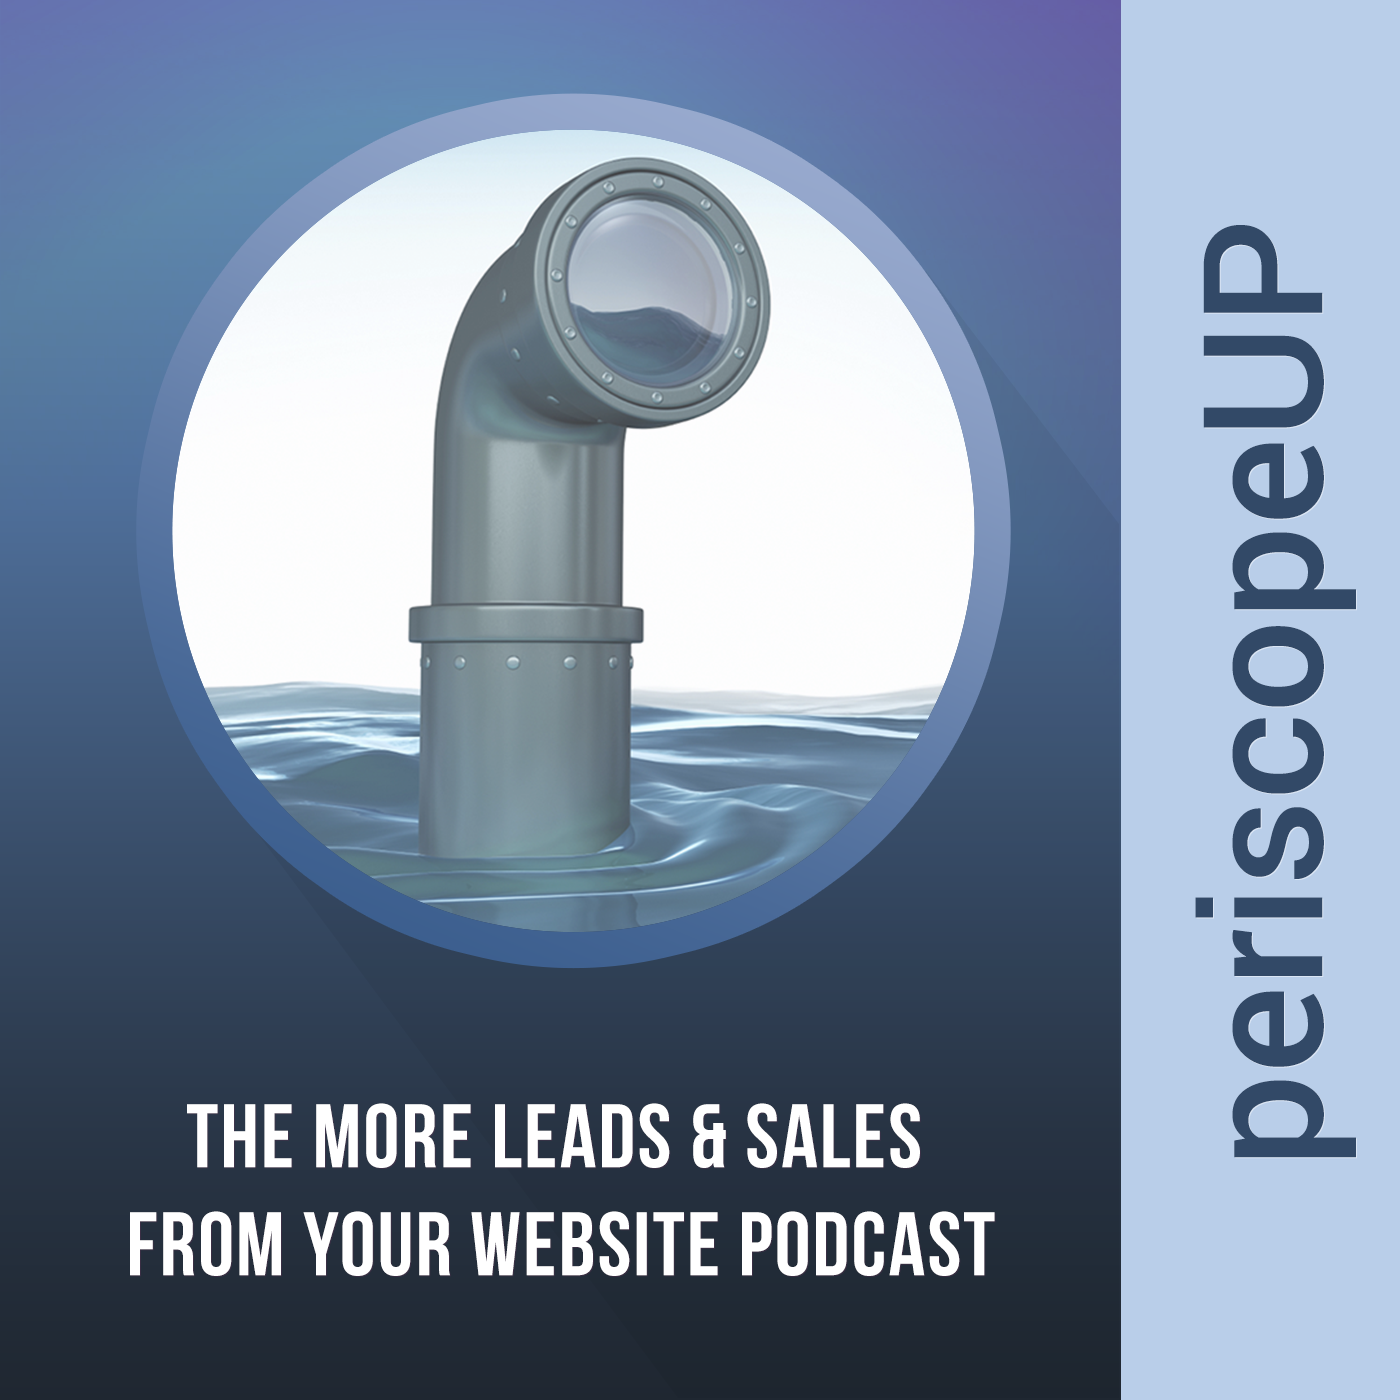 Getting More Leads & Sales From Your Website Podcast